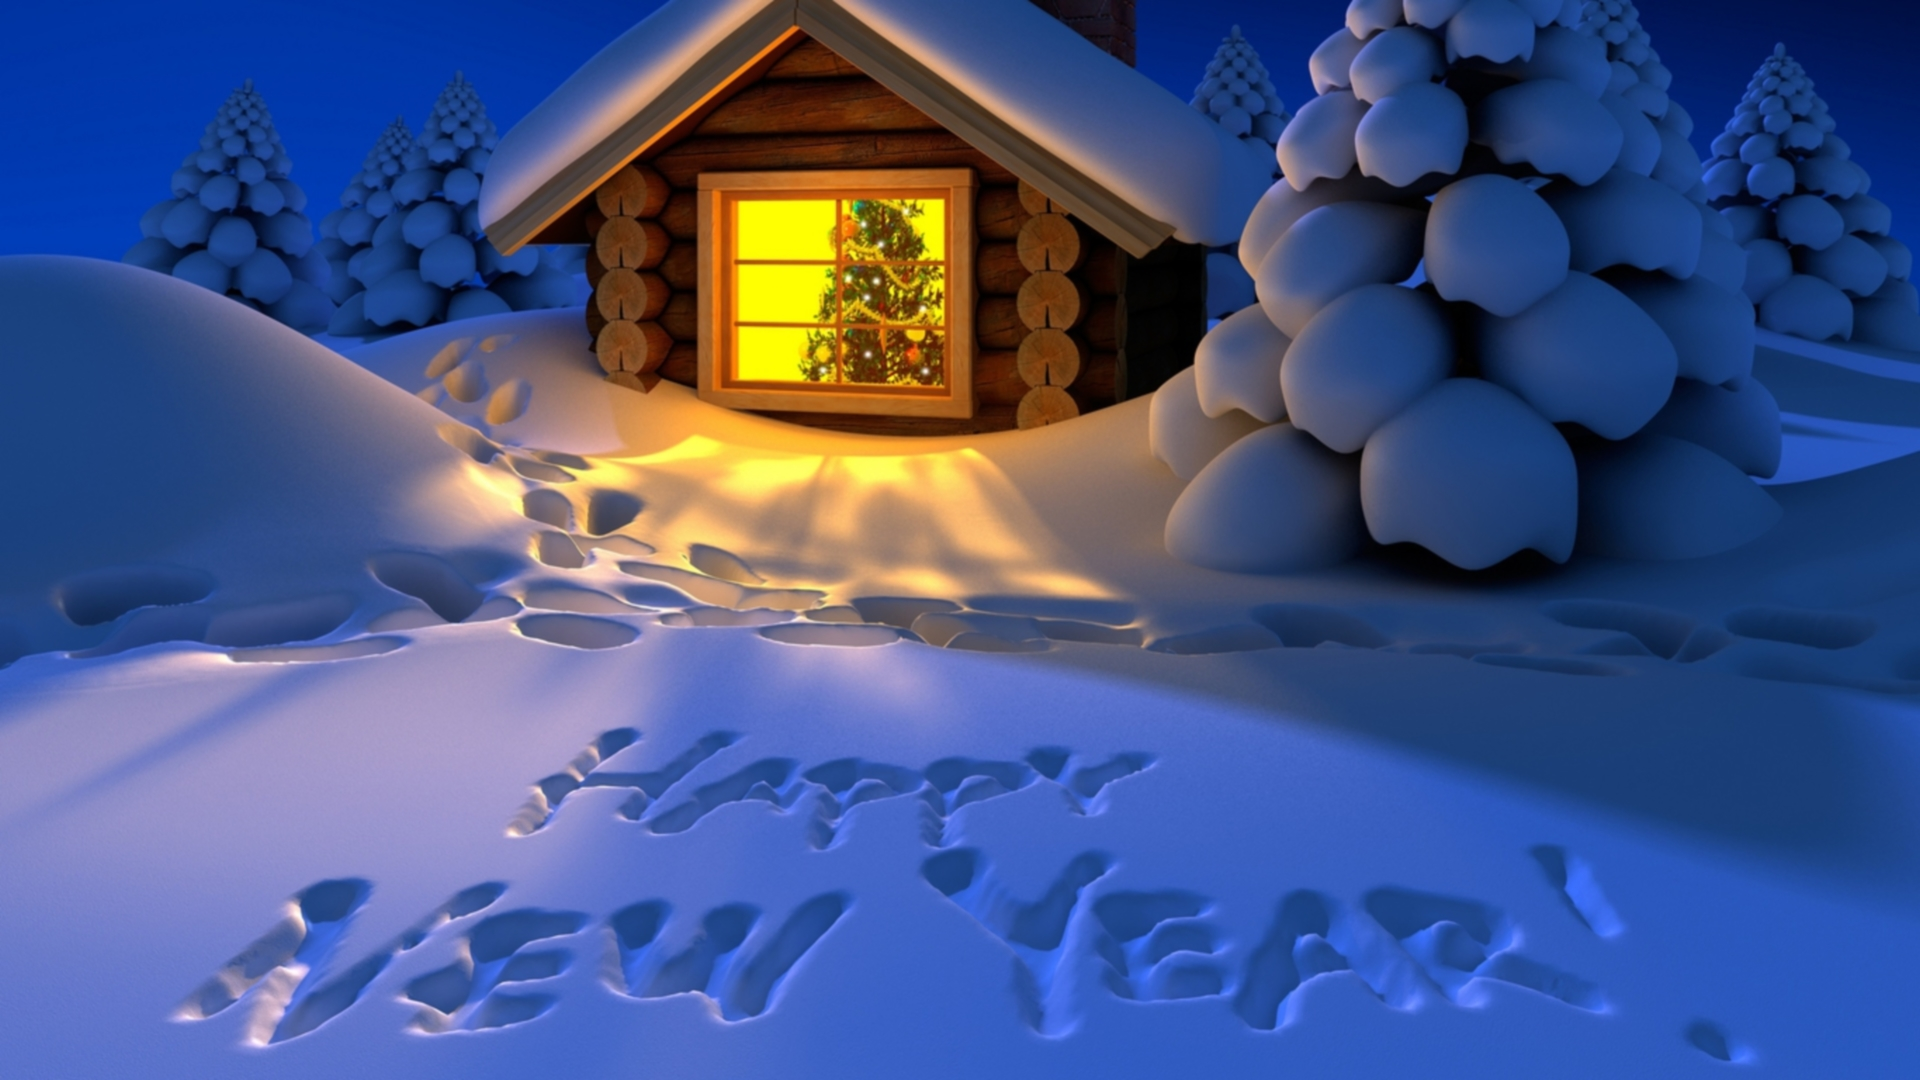 Merry christmas happy new year su9af happy new year 2014 hd theme voltagebd Image collections